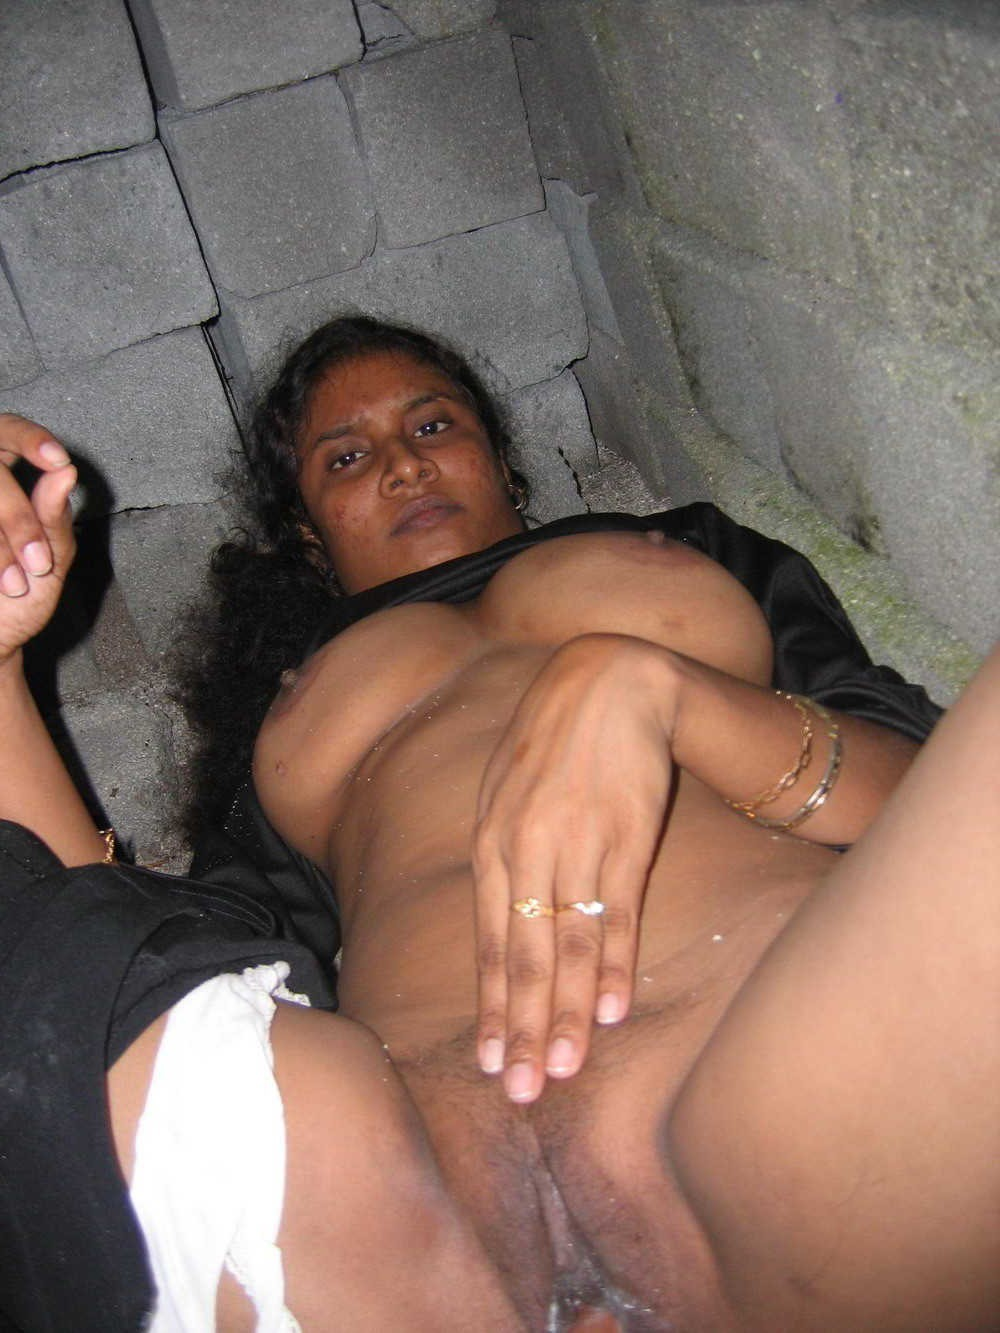 Desi Indian Horny Hot Sexy Bhabhi Sex Fucking Neighbor Blowjob With Chudai